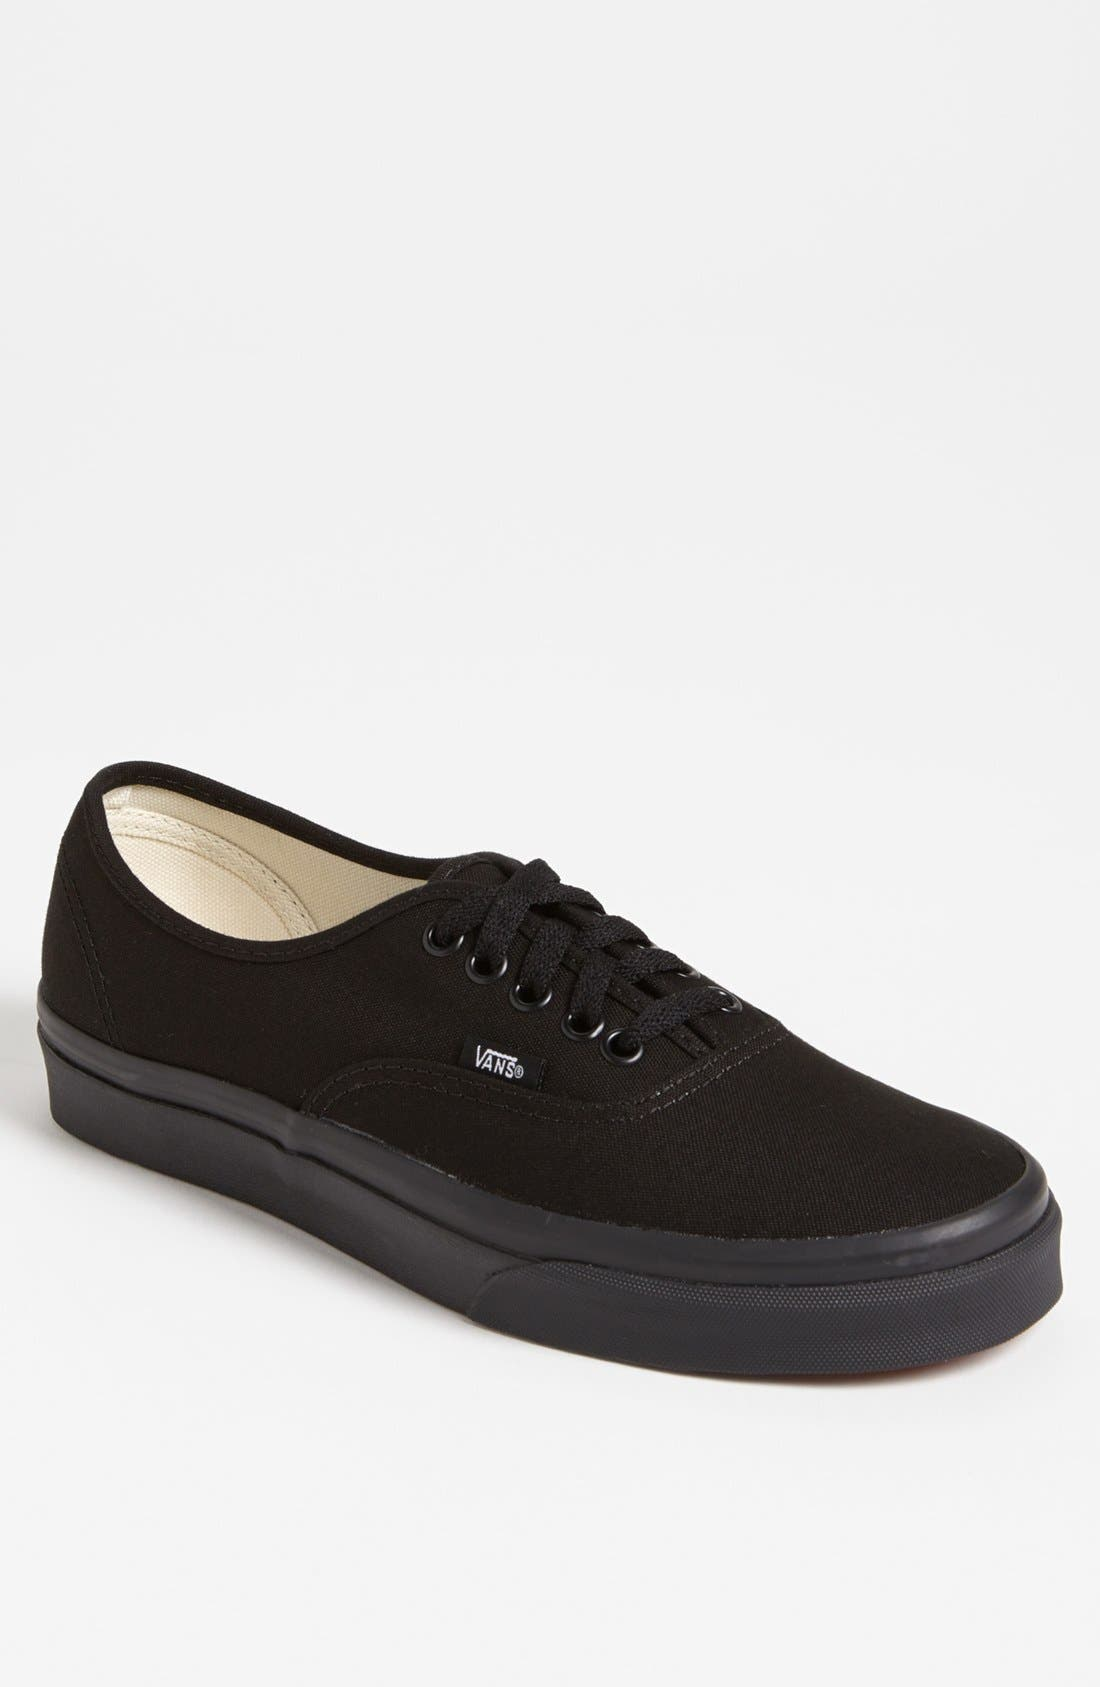 VANS 'Authentic' Sneaker, Main, color, BLACK/ BLACK